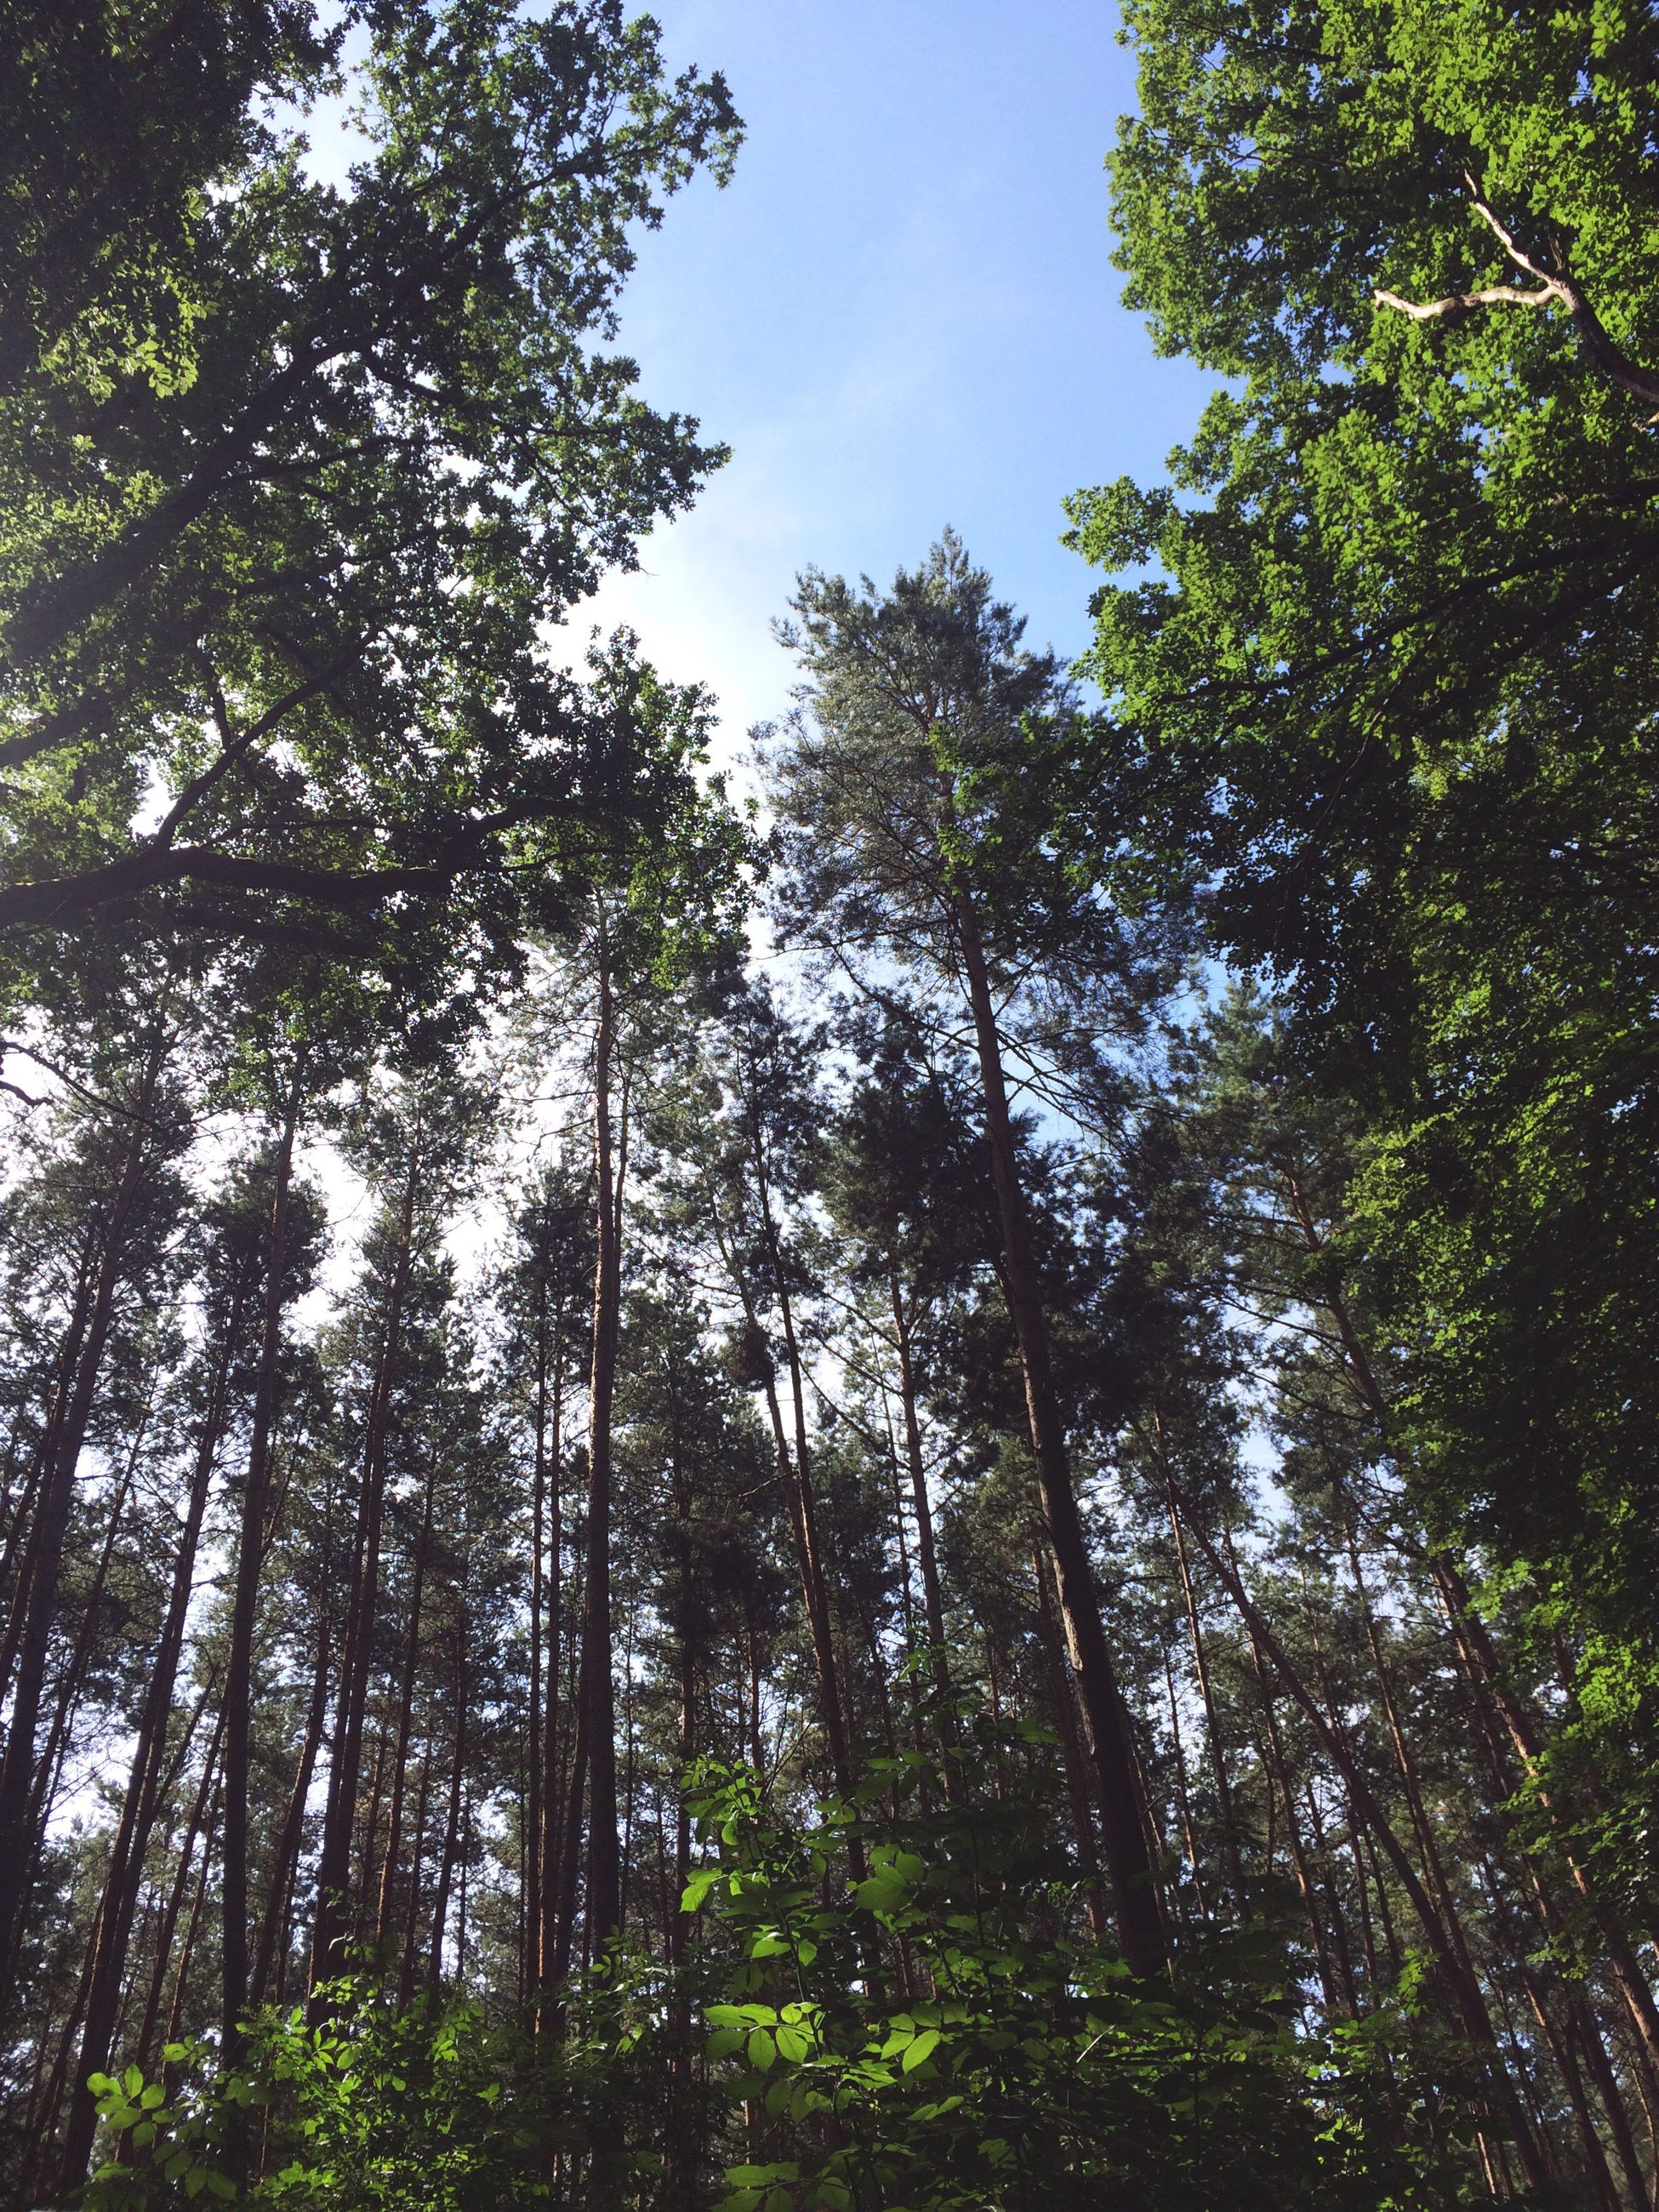 tree, low angle view, growth, forest, tranquility, green color, nature, beauty in nature, tree trunk, sky, tranquil scene, lush foliage, day, scenics, woodland, tall - high, outdoors, no people, green, non-urban scene, idyllic, backgrounds